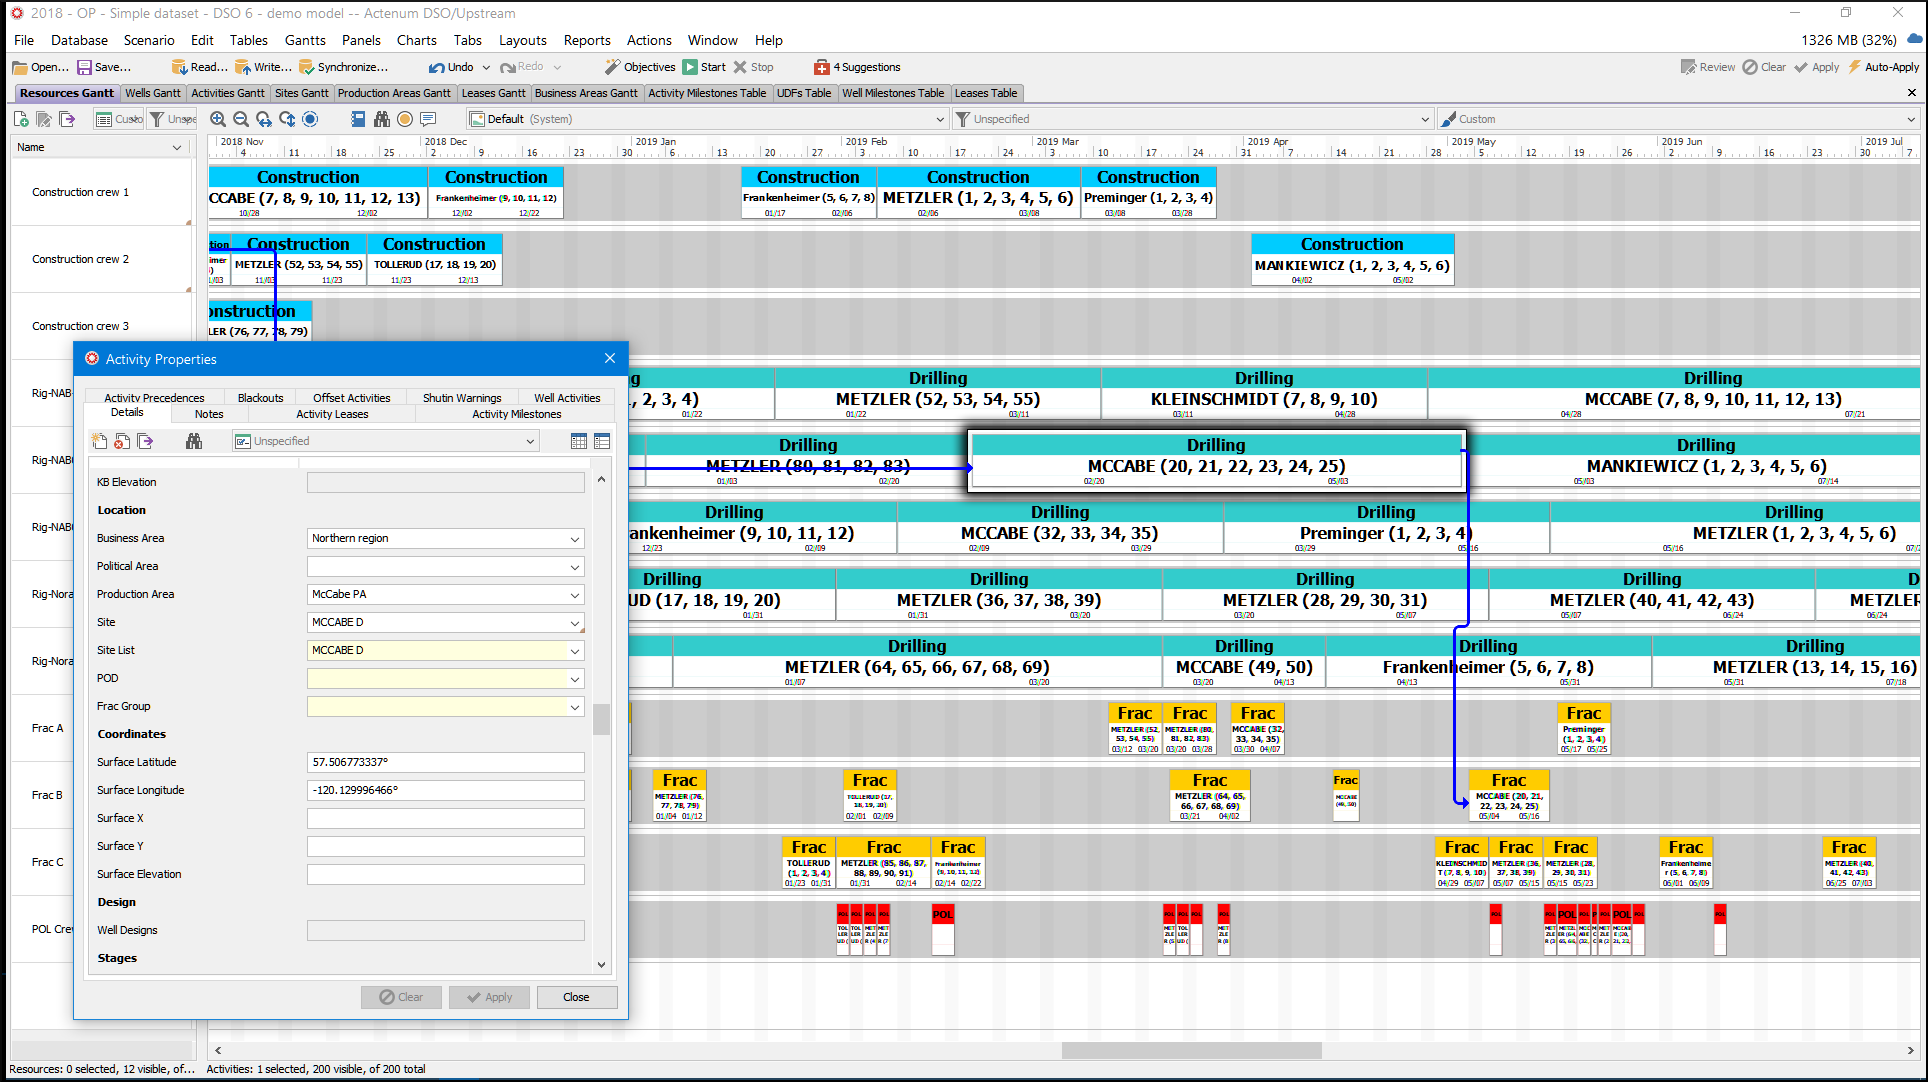 DSO/Upstream screenshot showing Gantt chart schedule view